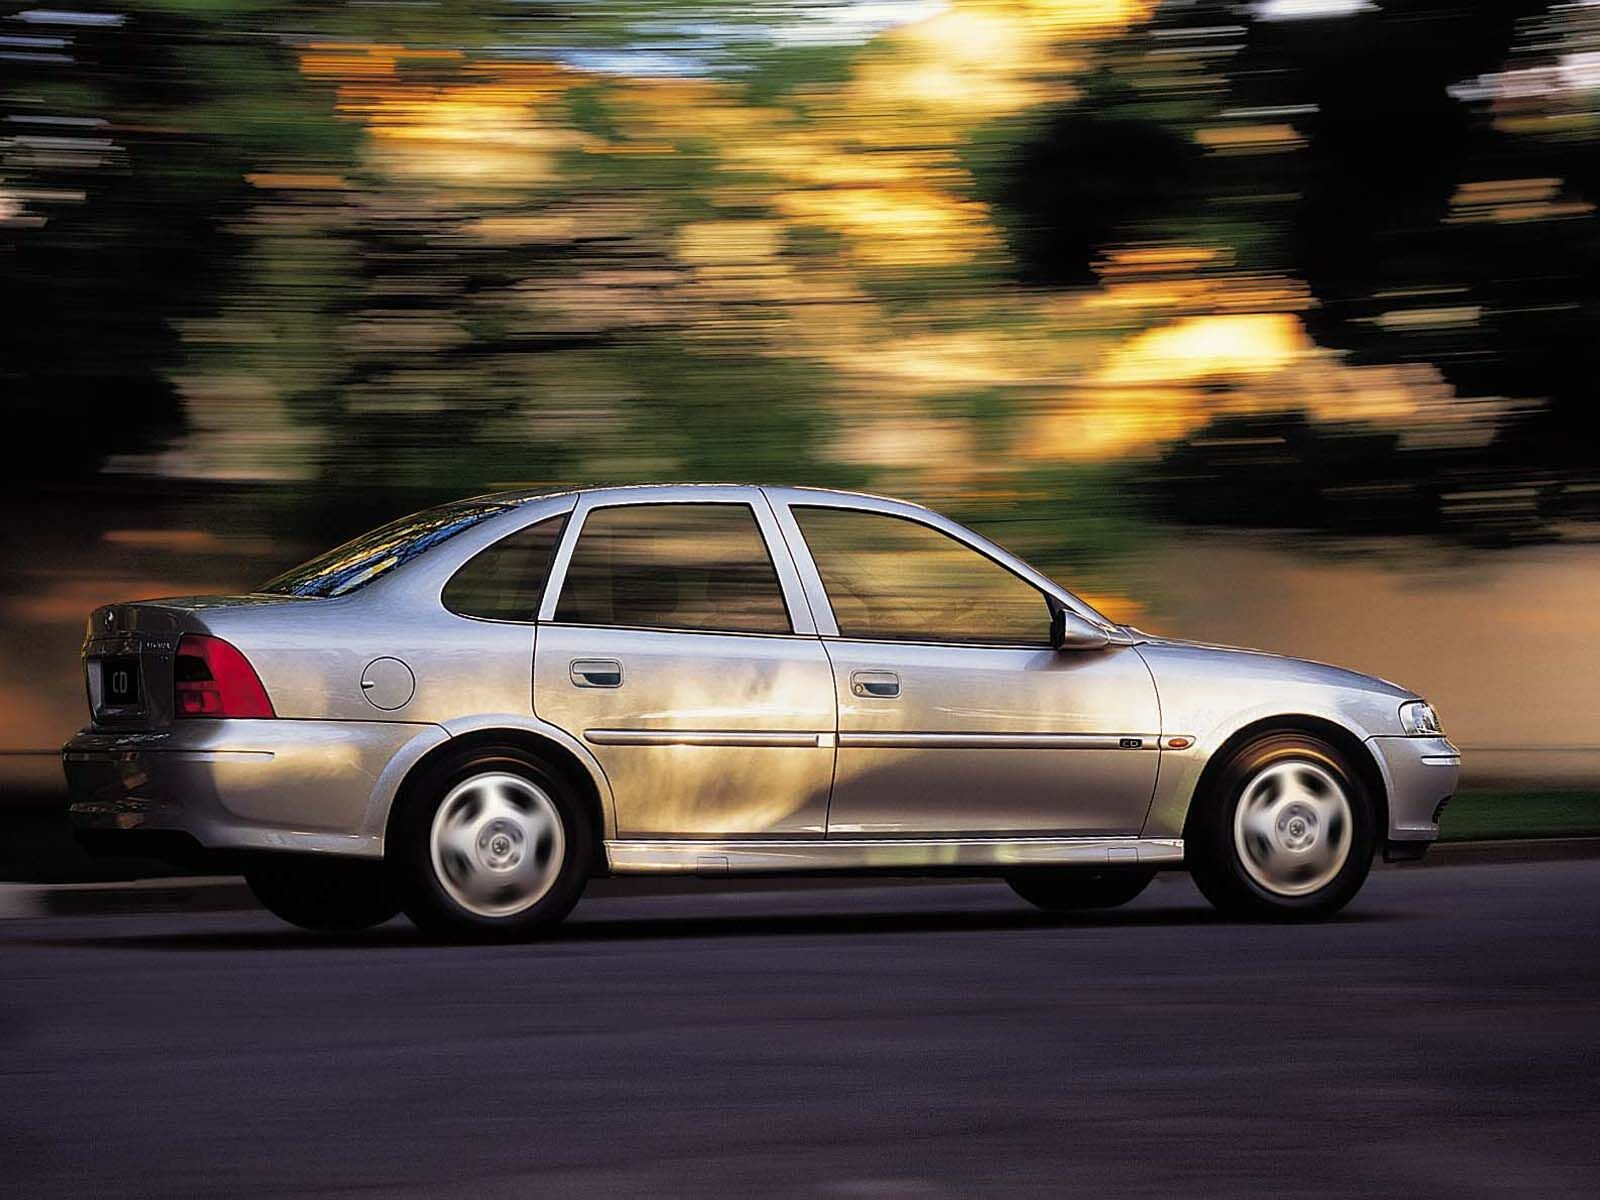 holden vectra images #7